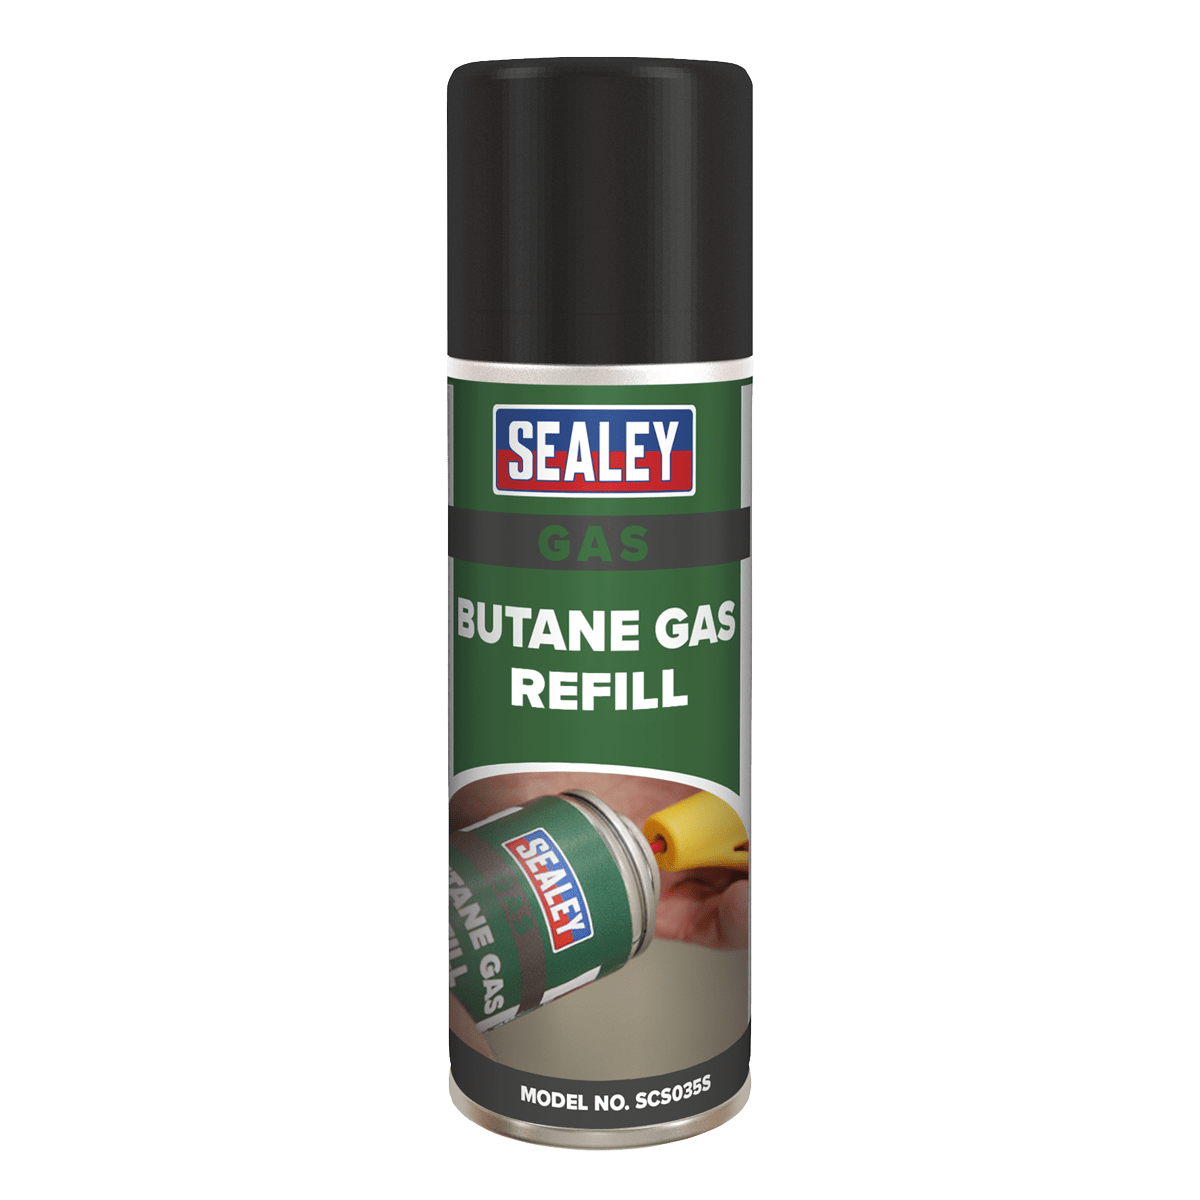 Sealey Butane Gas Refill 200ml SCS035S   High purity butane gas, helps prevent blocked nozzles, which can occur when using conventional lighter gas chargers.   toolforce.ie